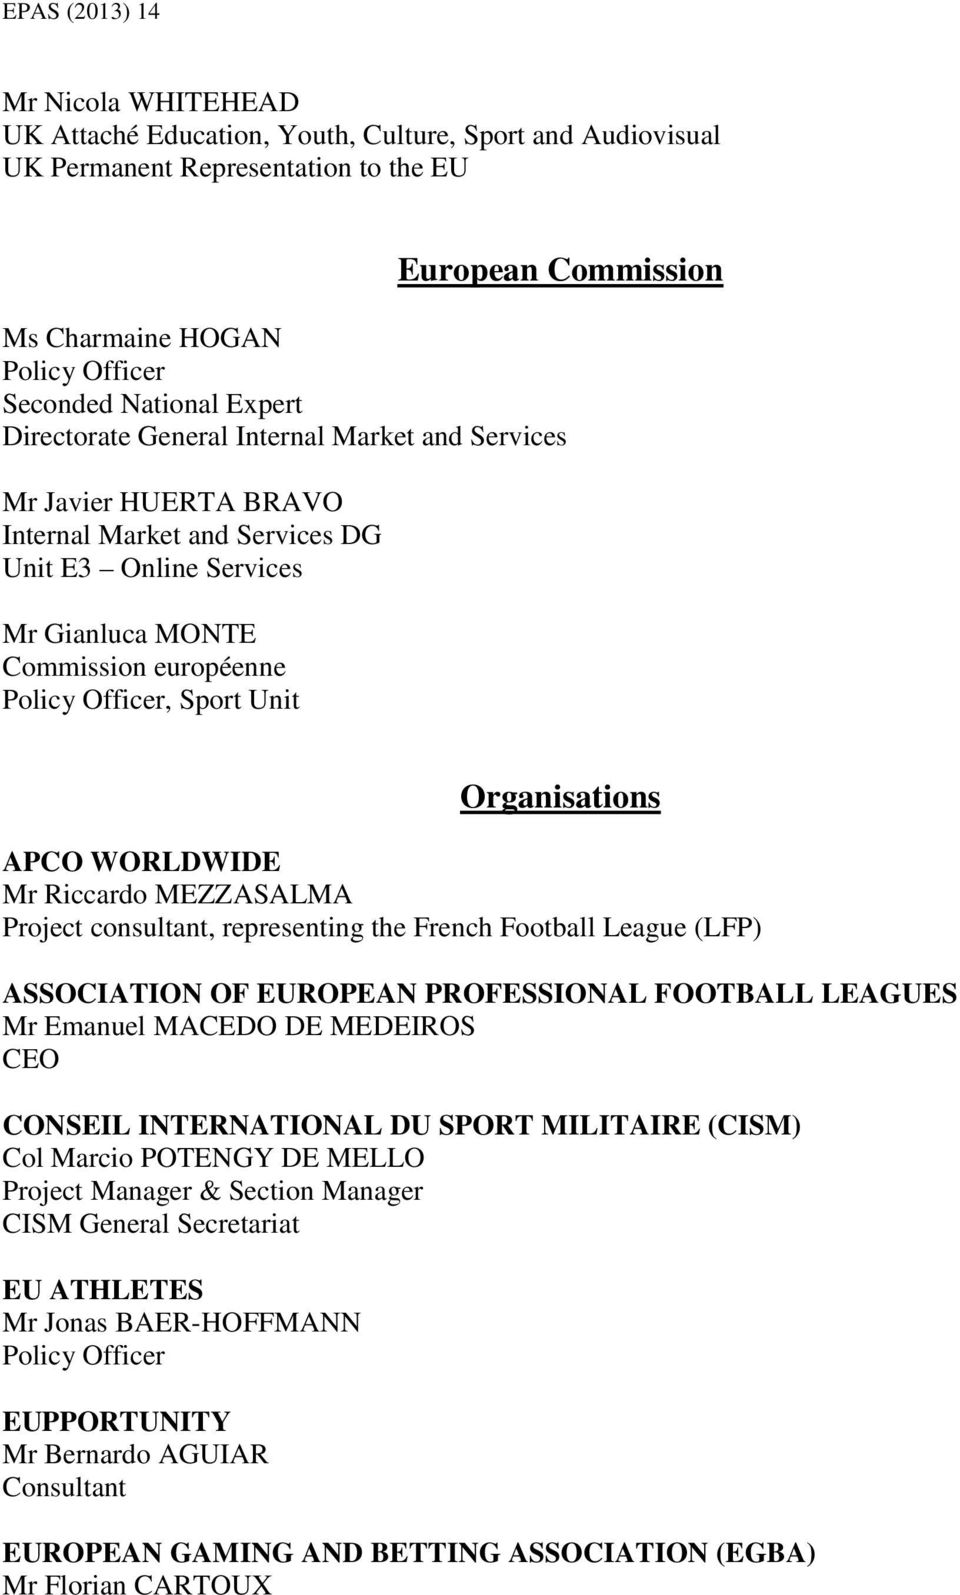 Organisations APCO WORLDWIDE Mr Riccardo MEZZASALMA Project consultant, representing the French Football League (LFP) ASSOCIATION OF EUROPEAN PROFESSIONAL FOOTBALL LEAGUES Mr Emanuel MACEDO DE